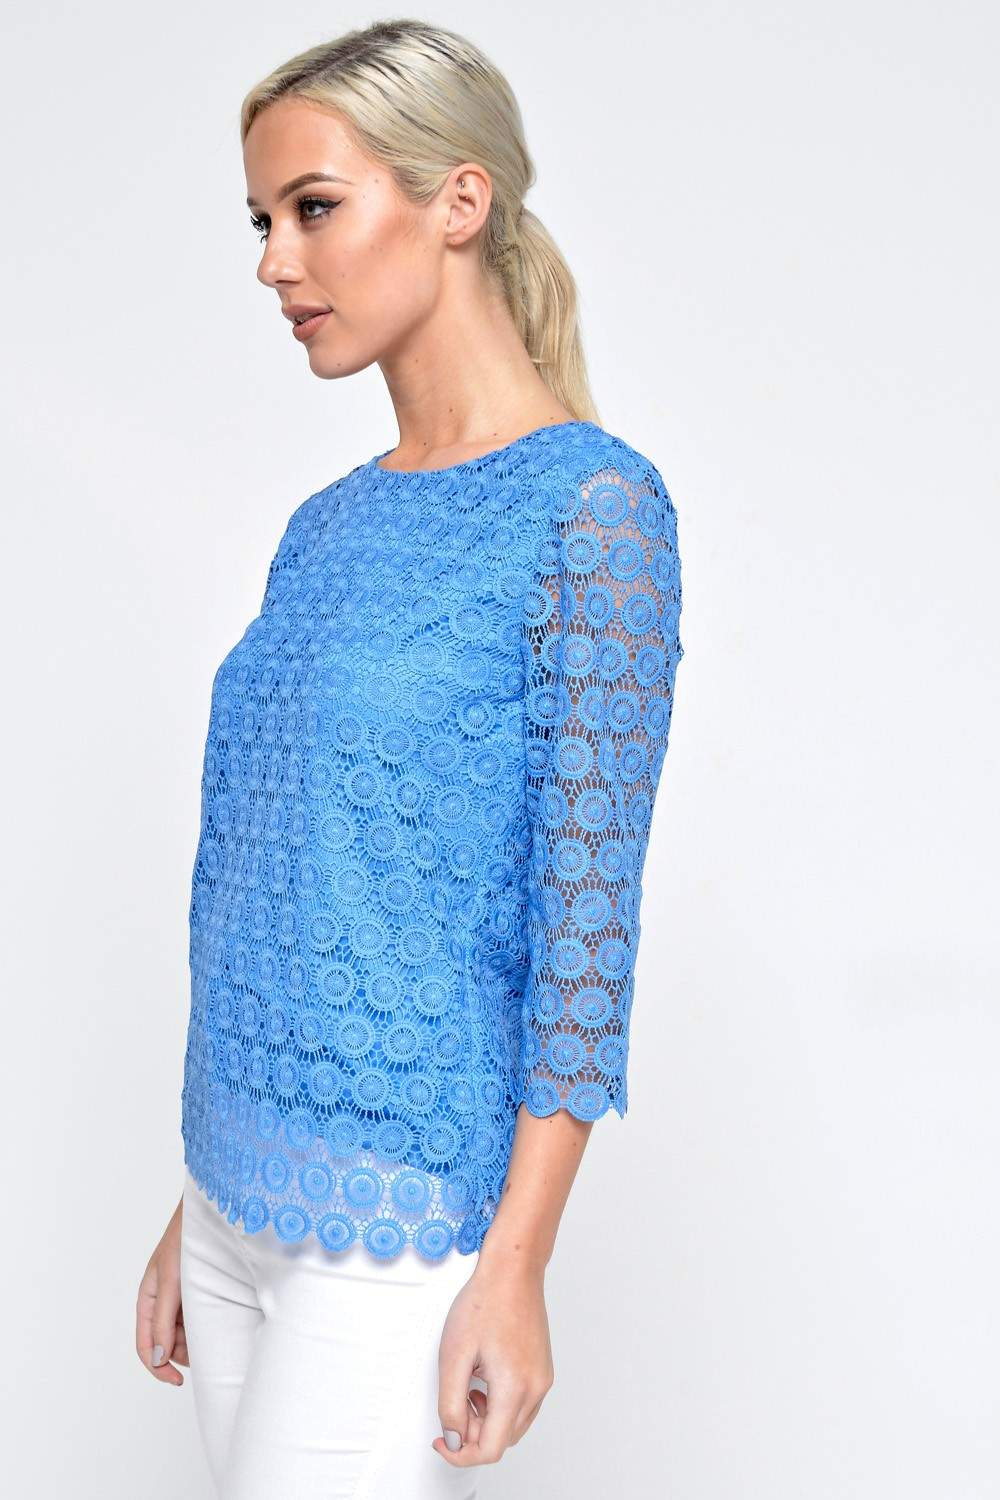 More Views Sinead Crochet Lace Top In Cornflower Blue